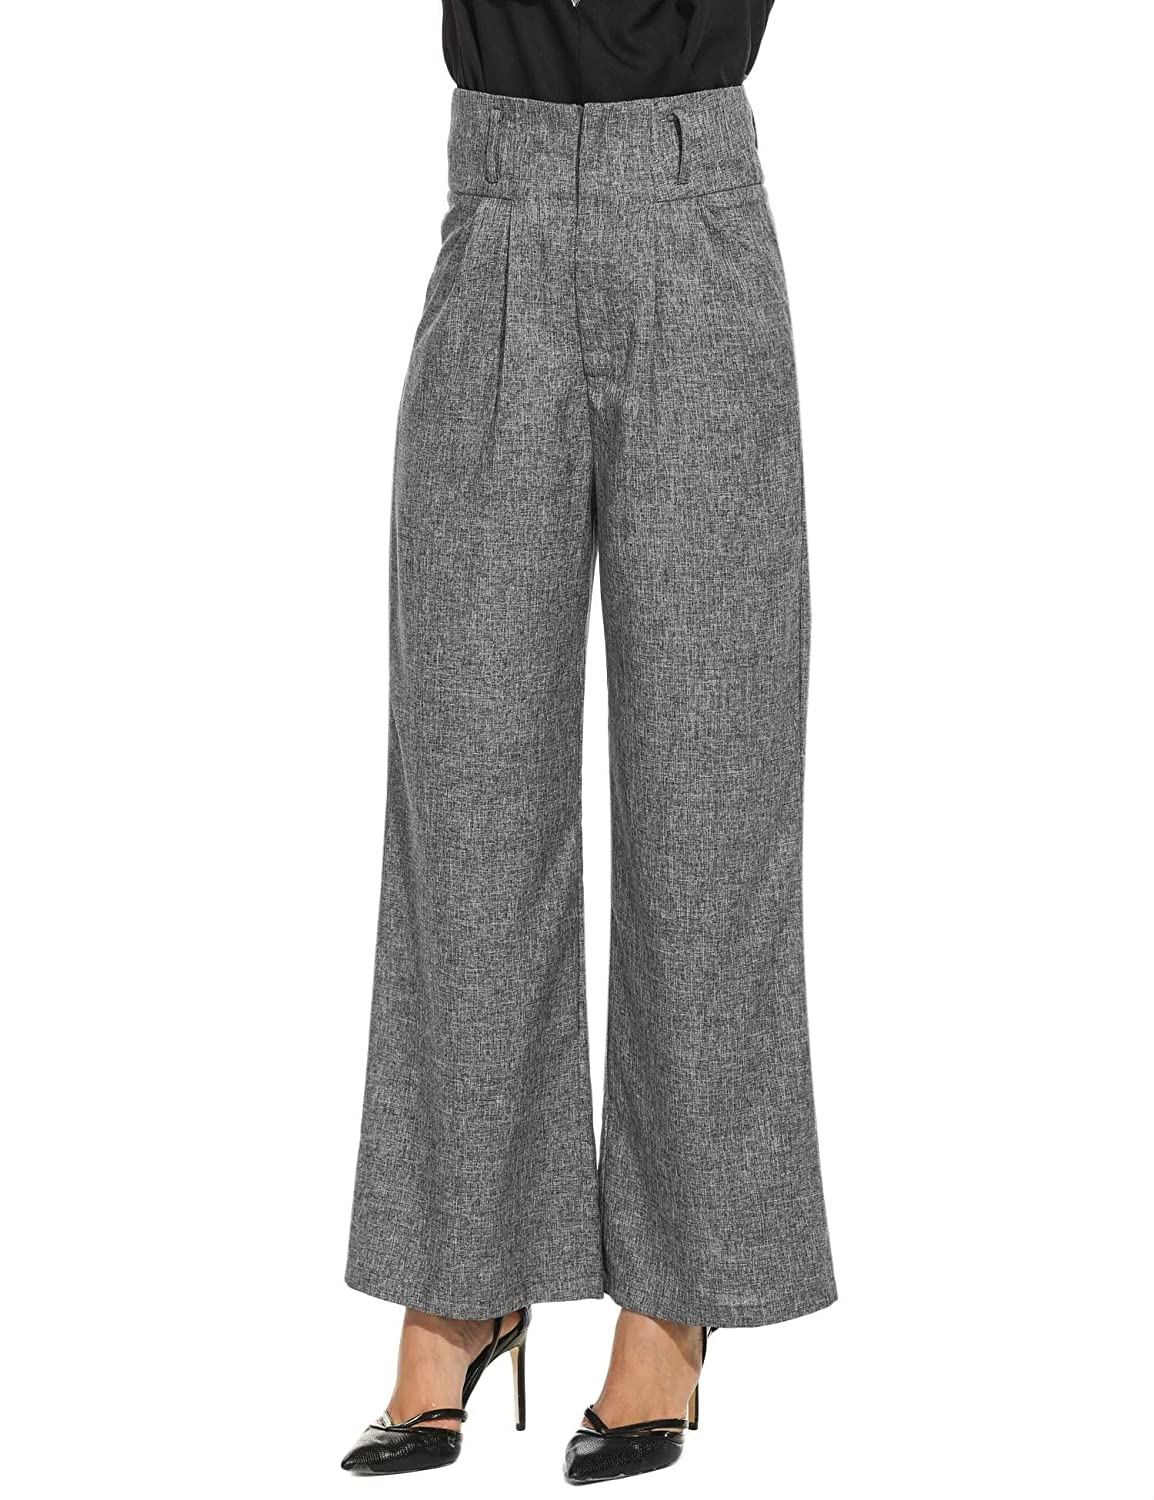 60s 70s Pants Jeans Hippie Bell Bottoms Jumpsuits